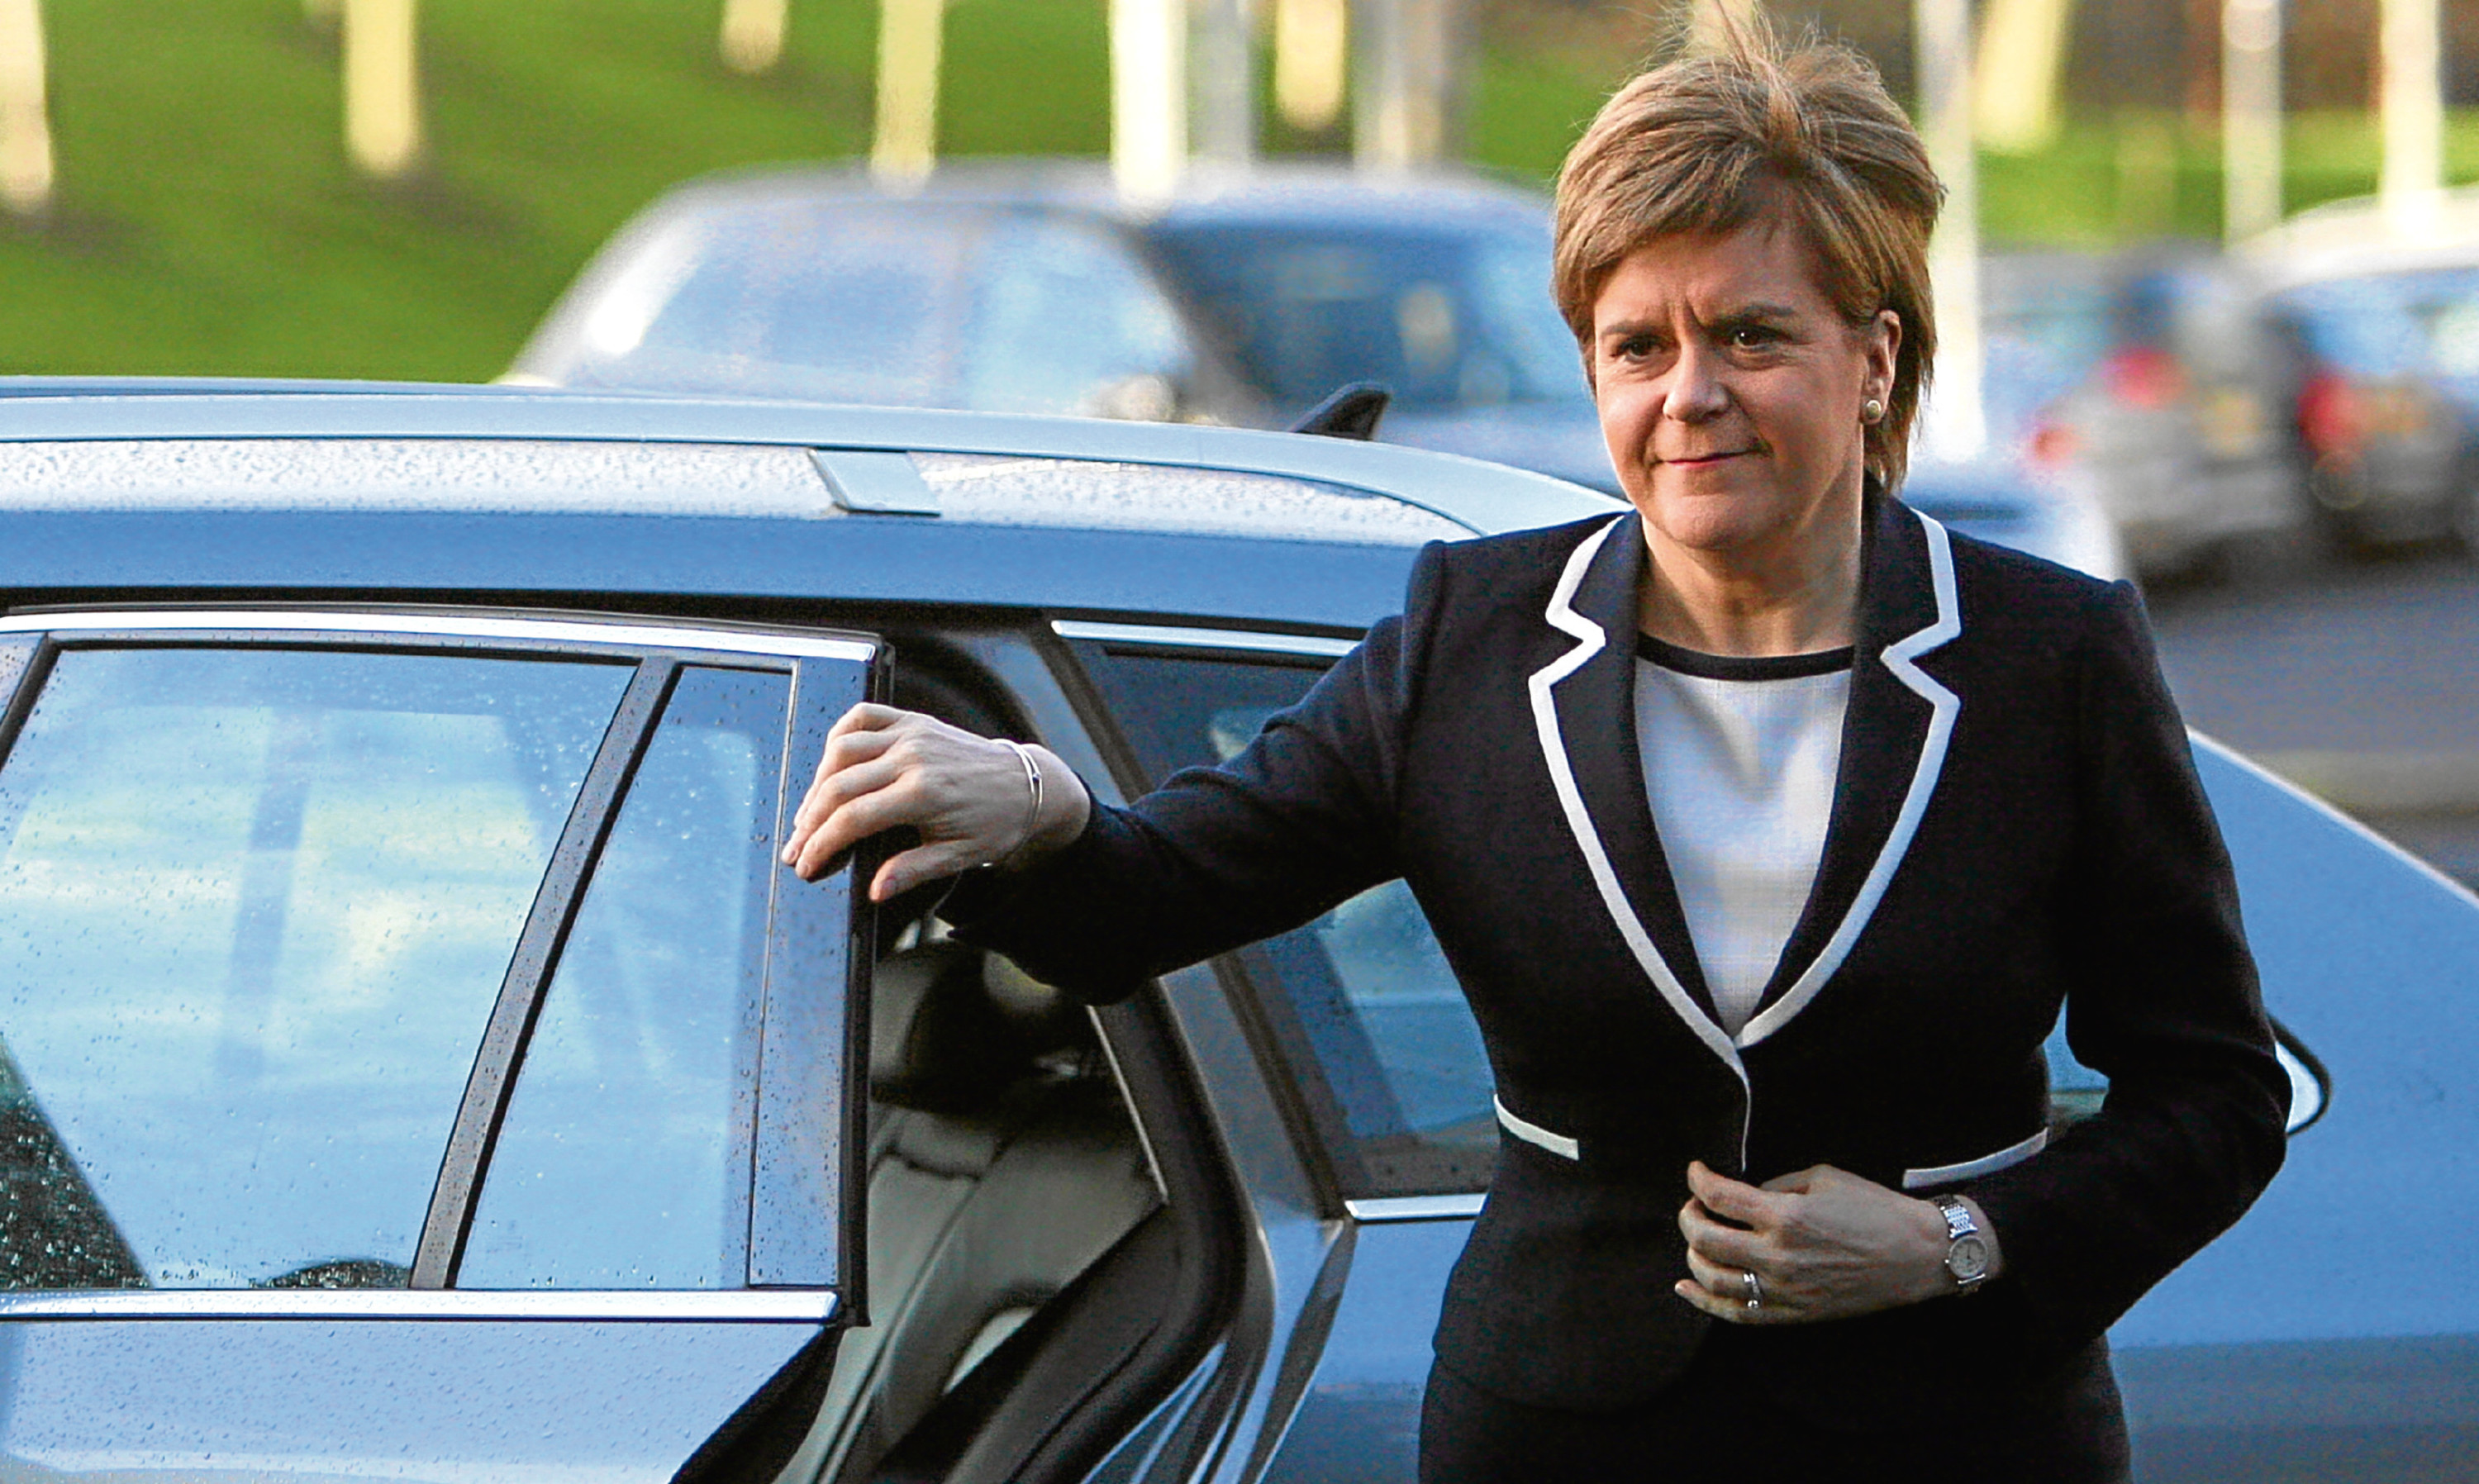 Nicola Sturgeon has issued various threats over Brexit but Alex can see no real reason why Theresa May's Westminster government should take much notice.